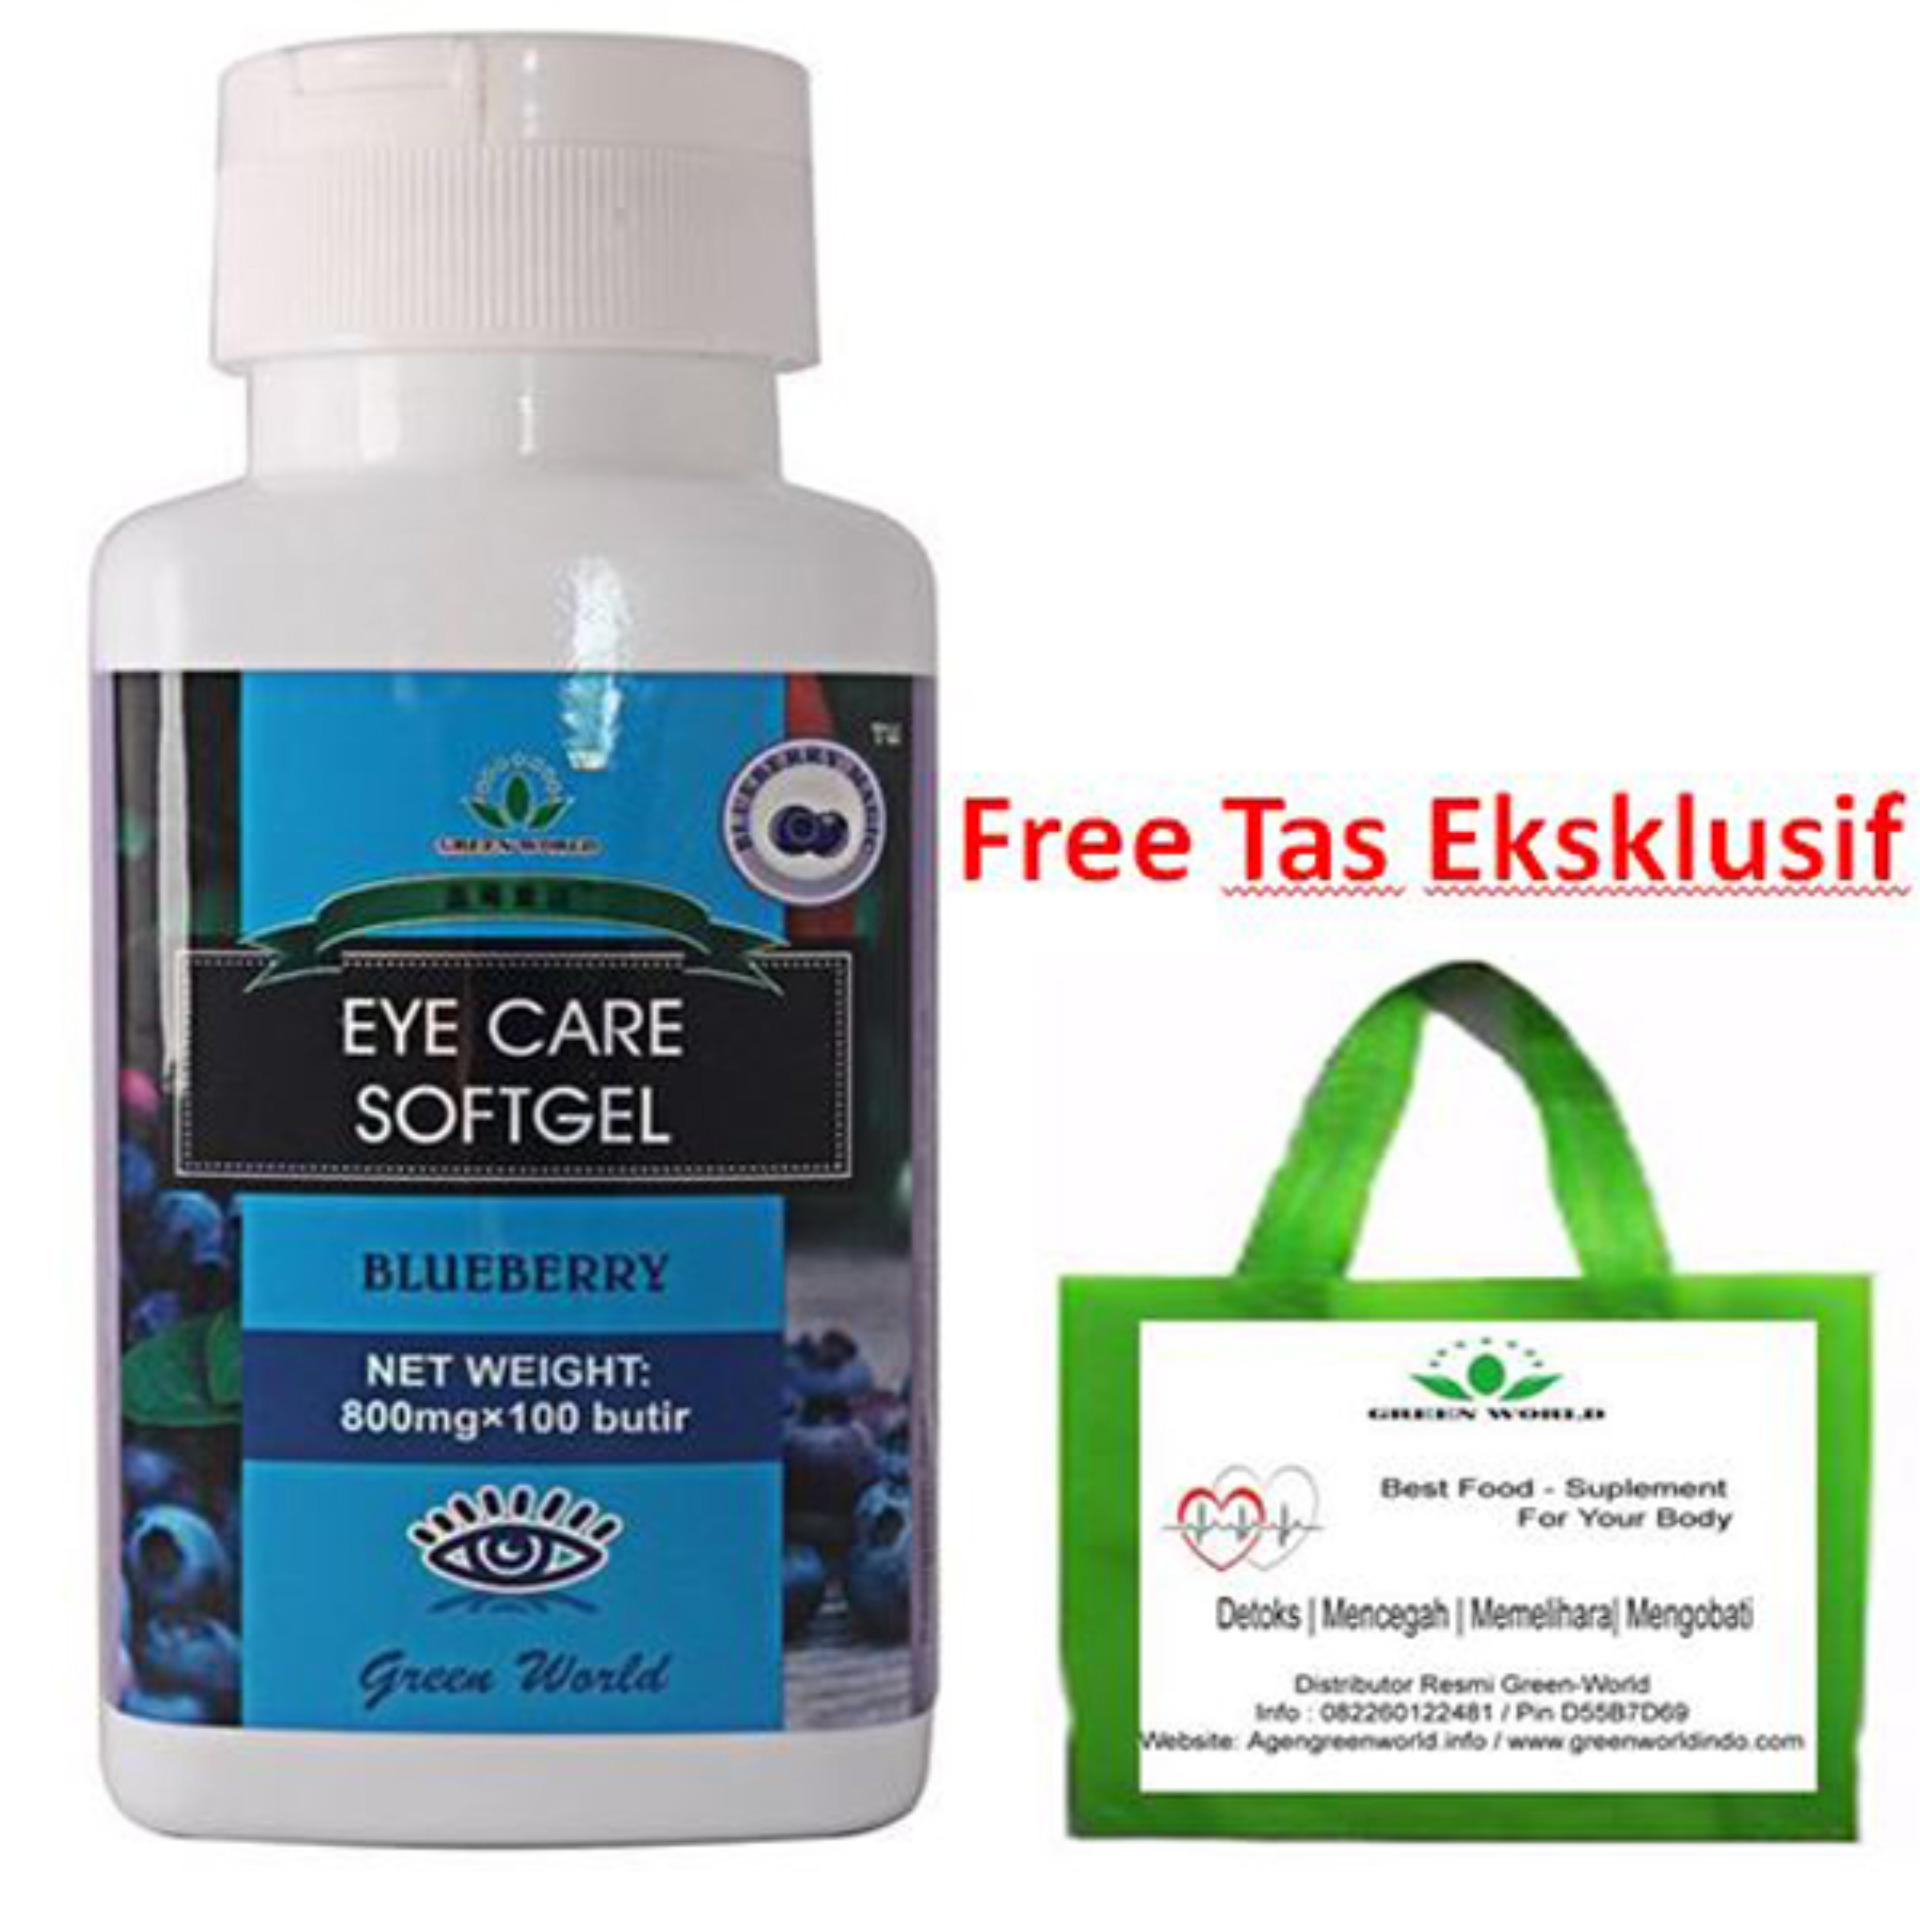 Harga Green World Eye Care Softgel Bonus Tas Ekslusif Green World Asli